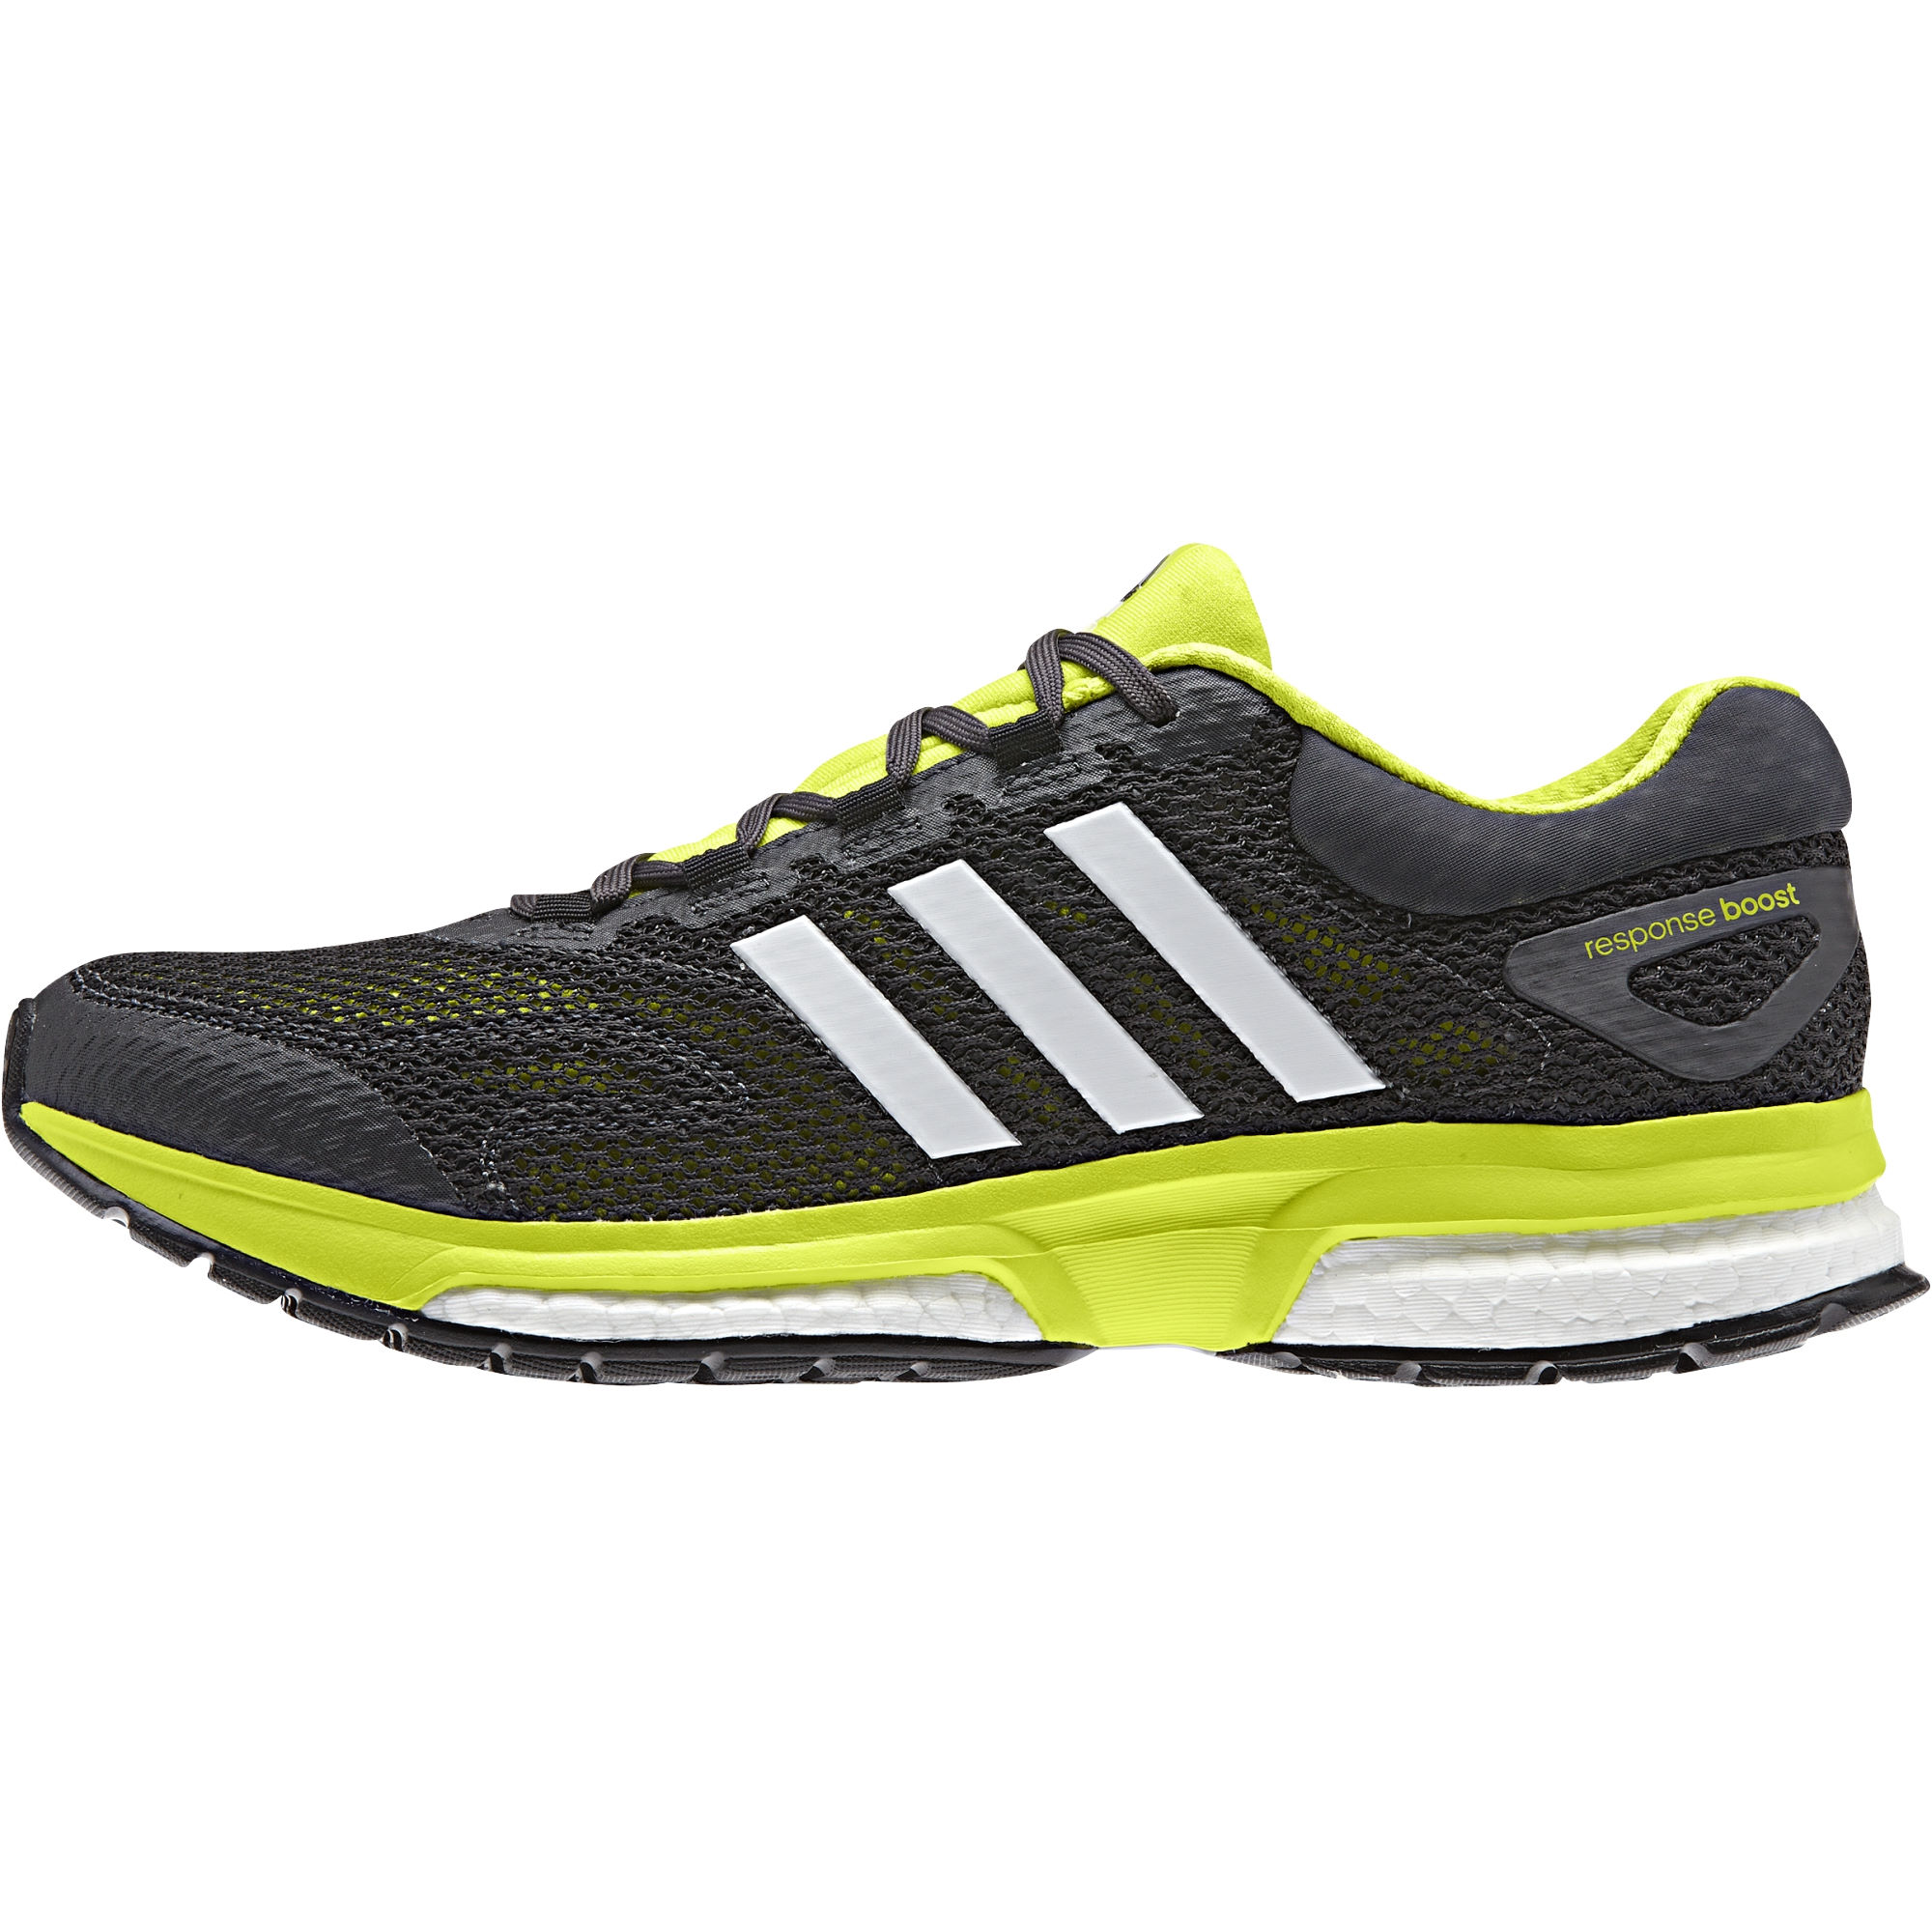 Wiggle Adidas Response Boost Shoes Ss15 Cushion